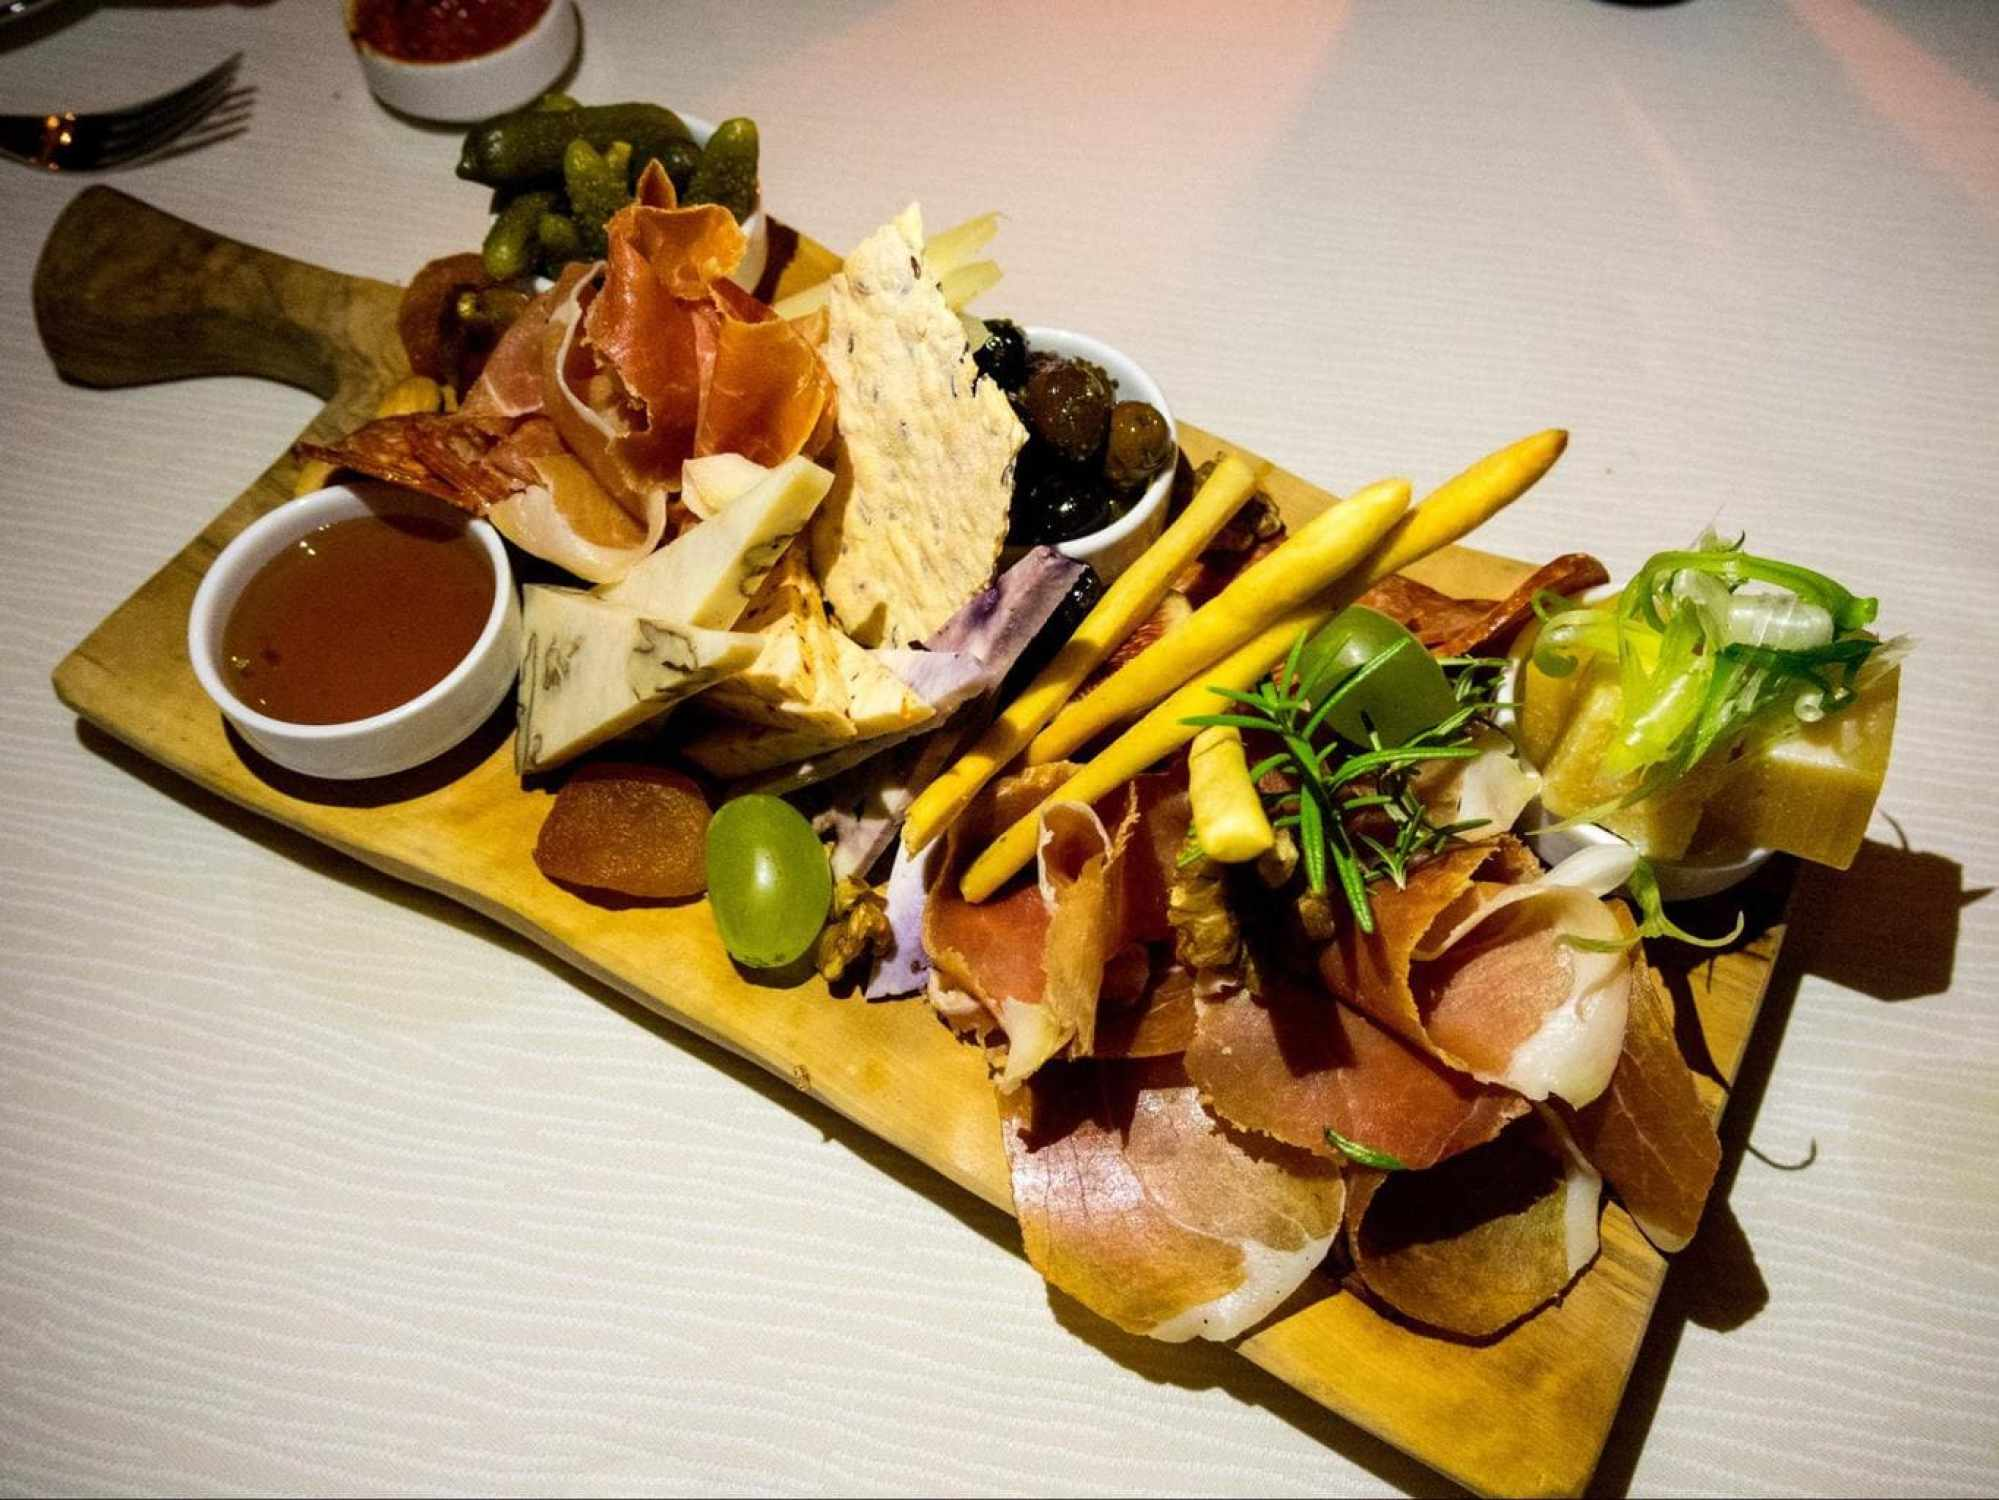 Cheese and ham platter